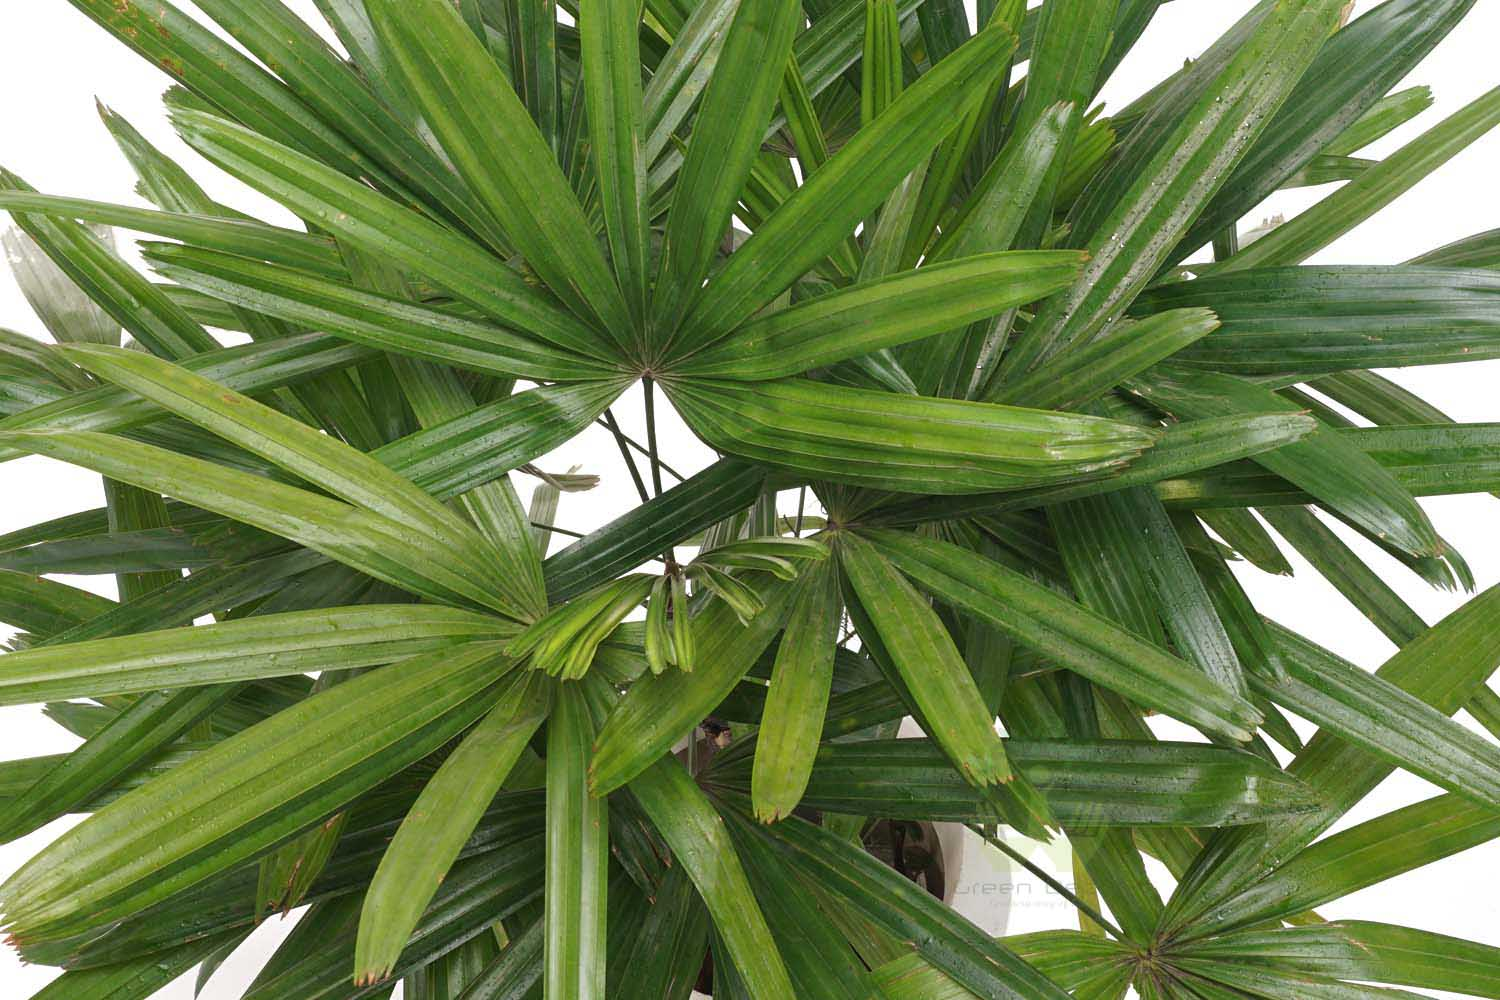 Buy Broadleaf Lady Palm Plants Top View , White Pots and seeds in Delhi NCR by the best online nursery shop Greendecor.